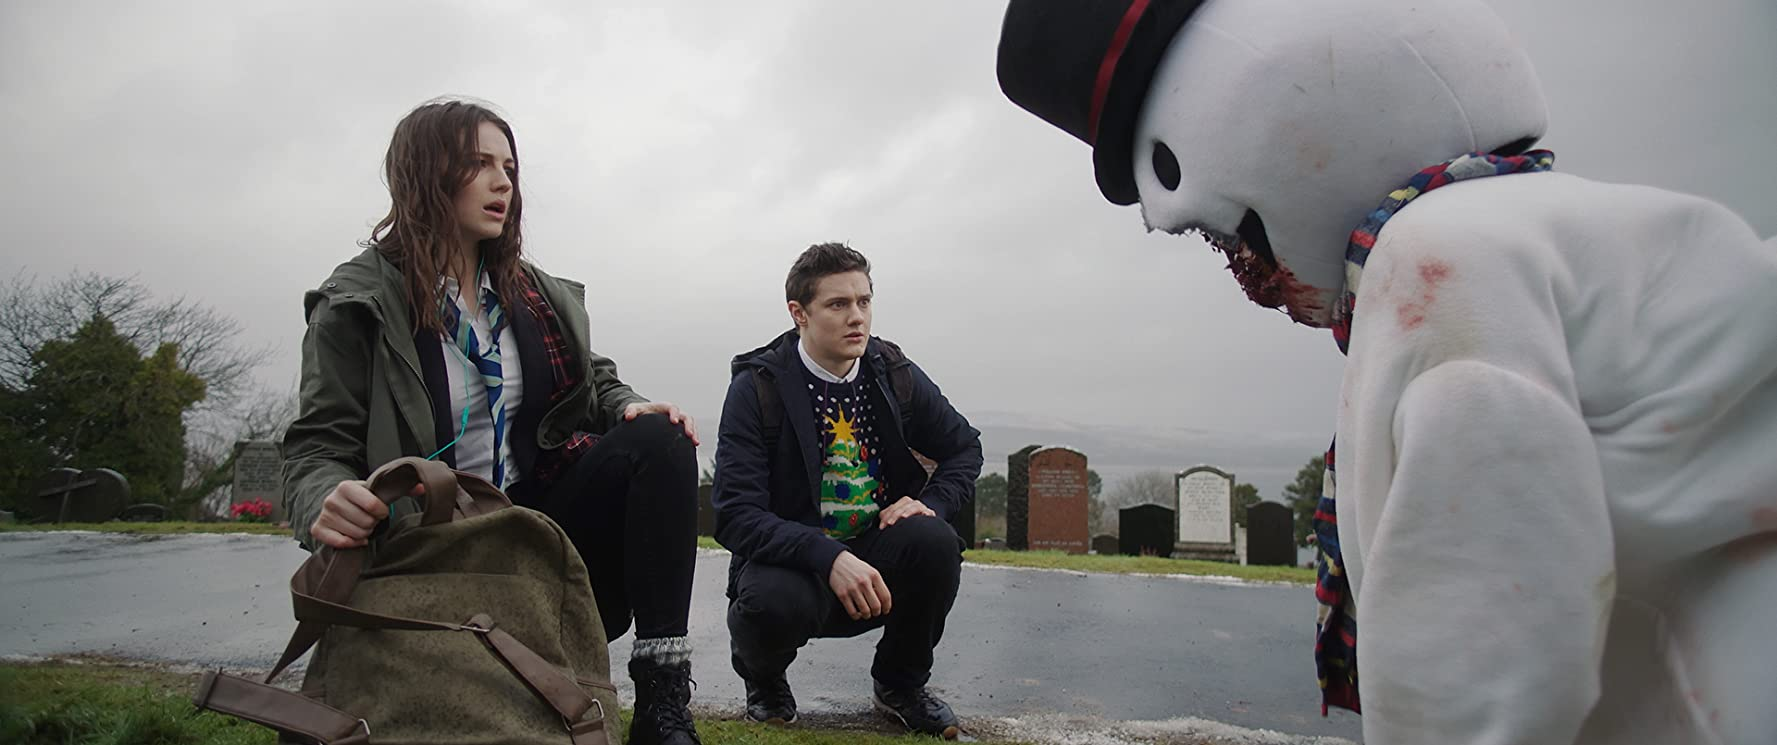 Ella Hunt, Malcolm Cumming, and Callum Johnstone in Anna and the Apocalypse (2017)